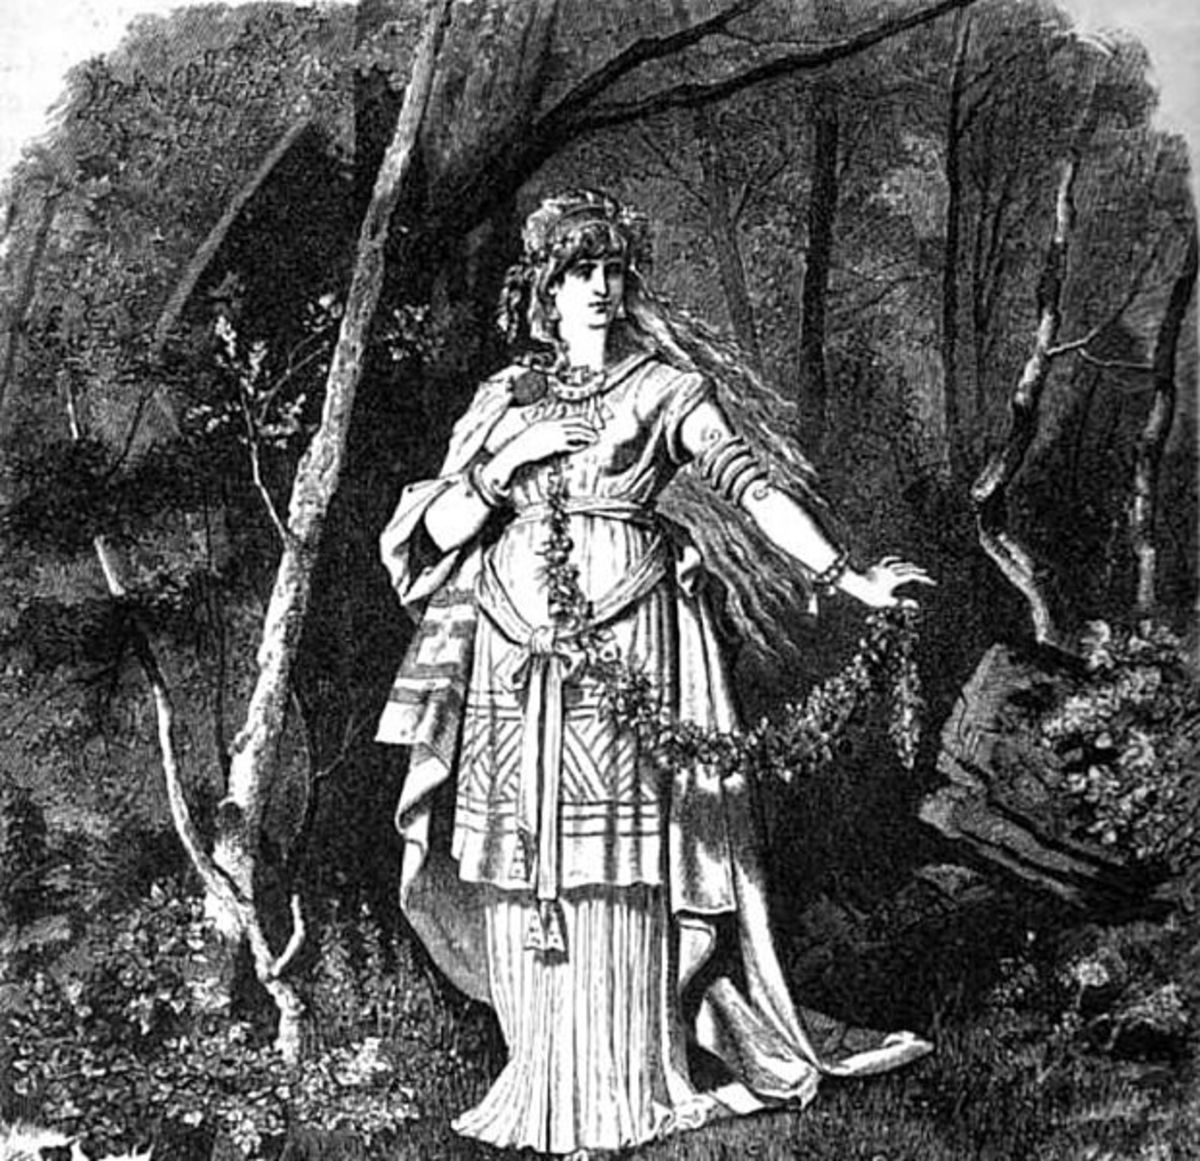 Freyja in the Woods, by Emil Doepler c. 1882